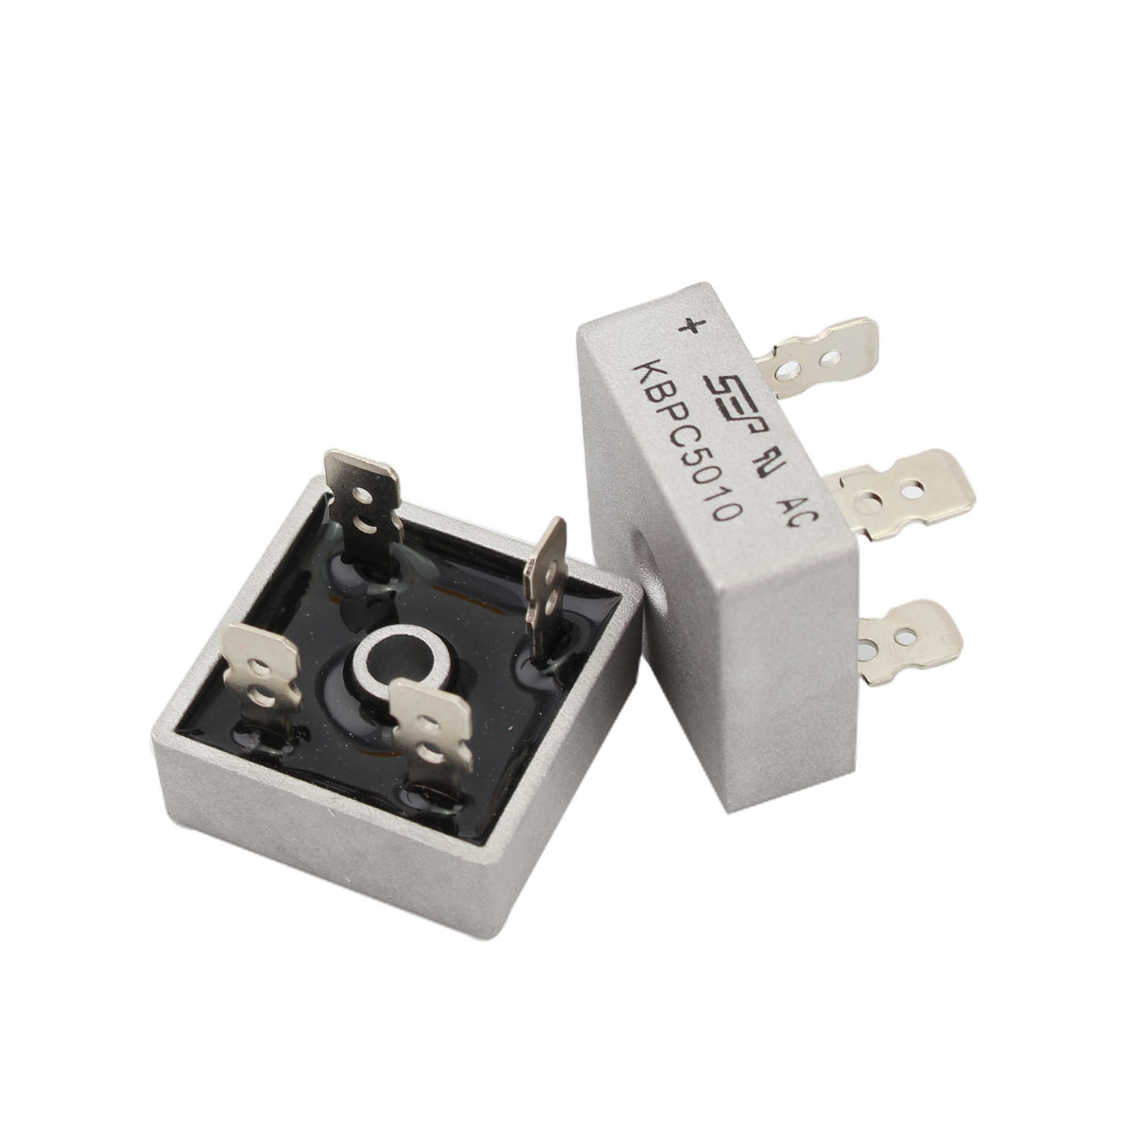 5 teile/los KBPC5010 diode bridge rectifier diode 50A 1000 V KBPC 5010 power rectifier diode electronica componentes